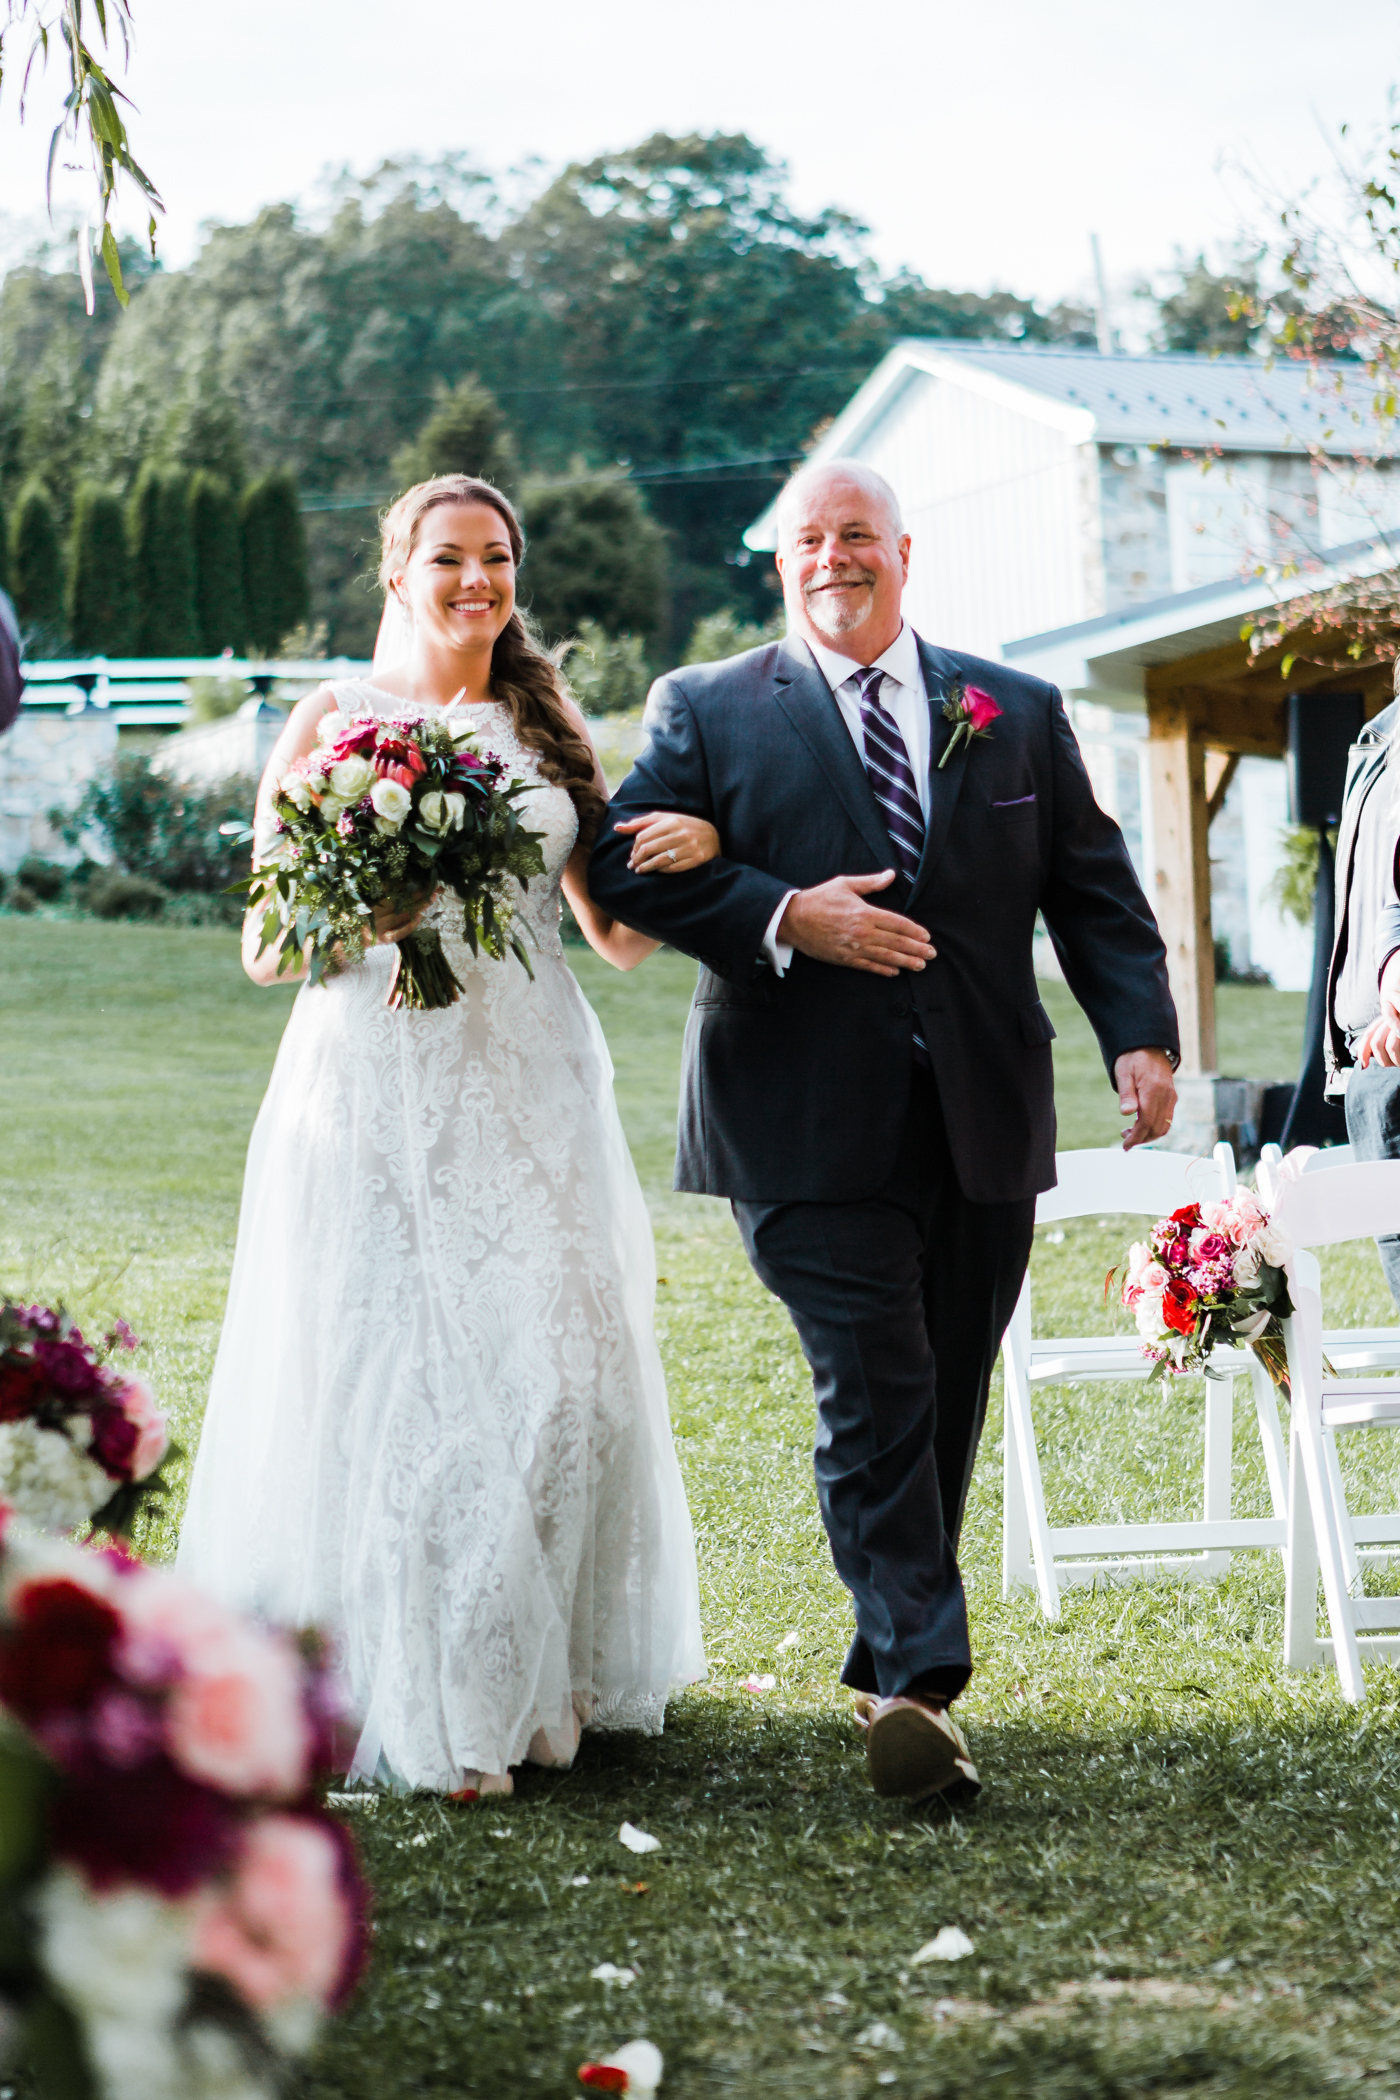 Bride walking down the aisle with her father at Pond View Farm